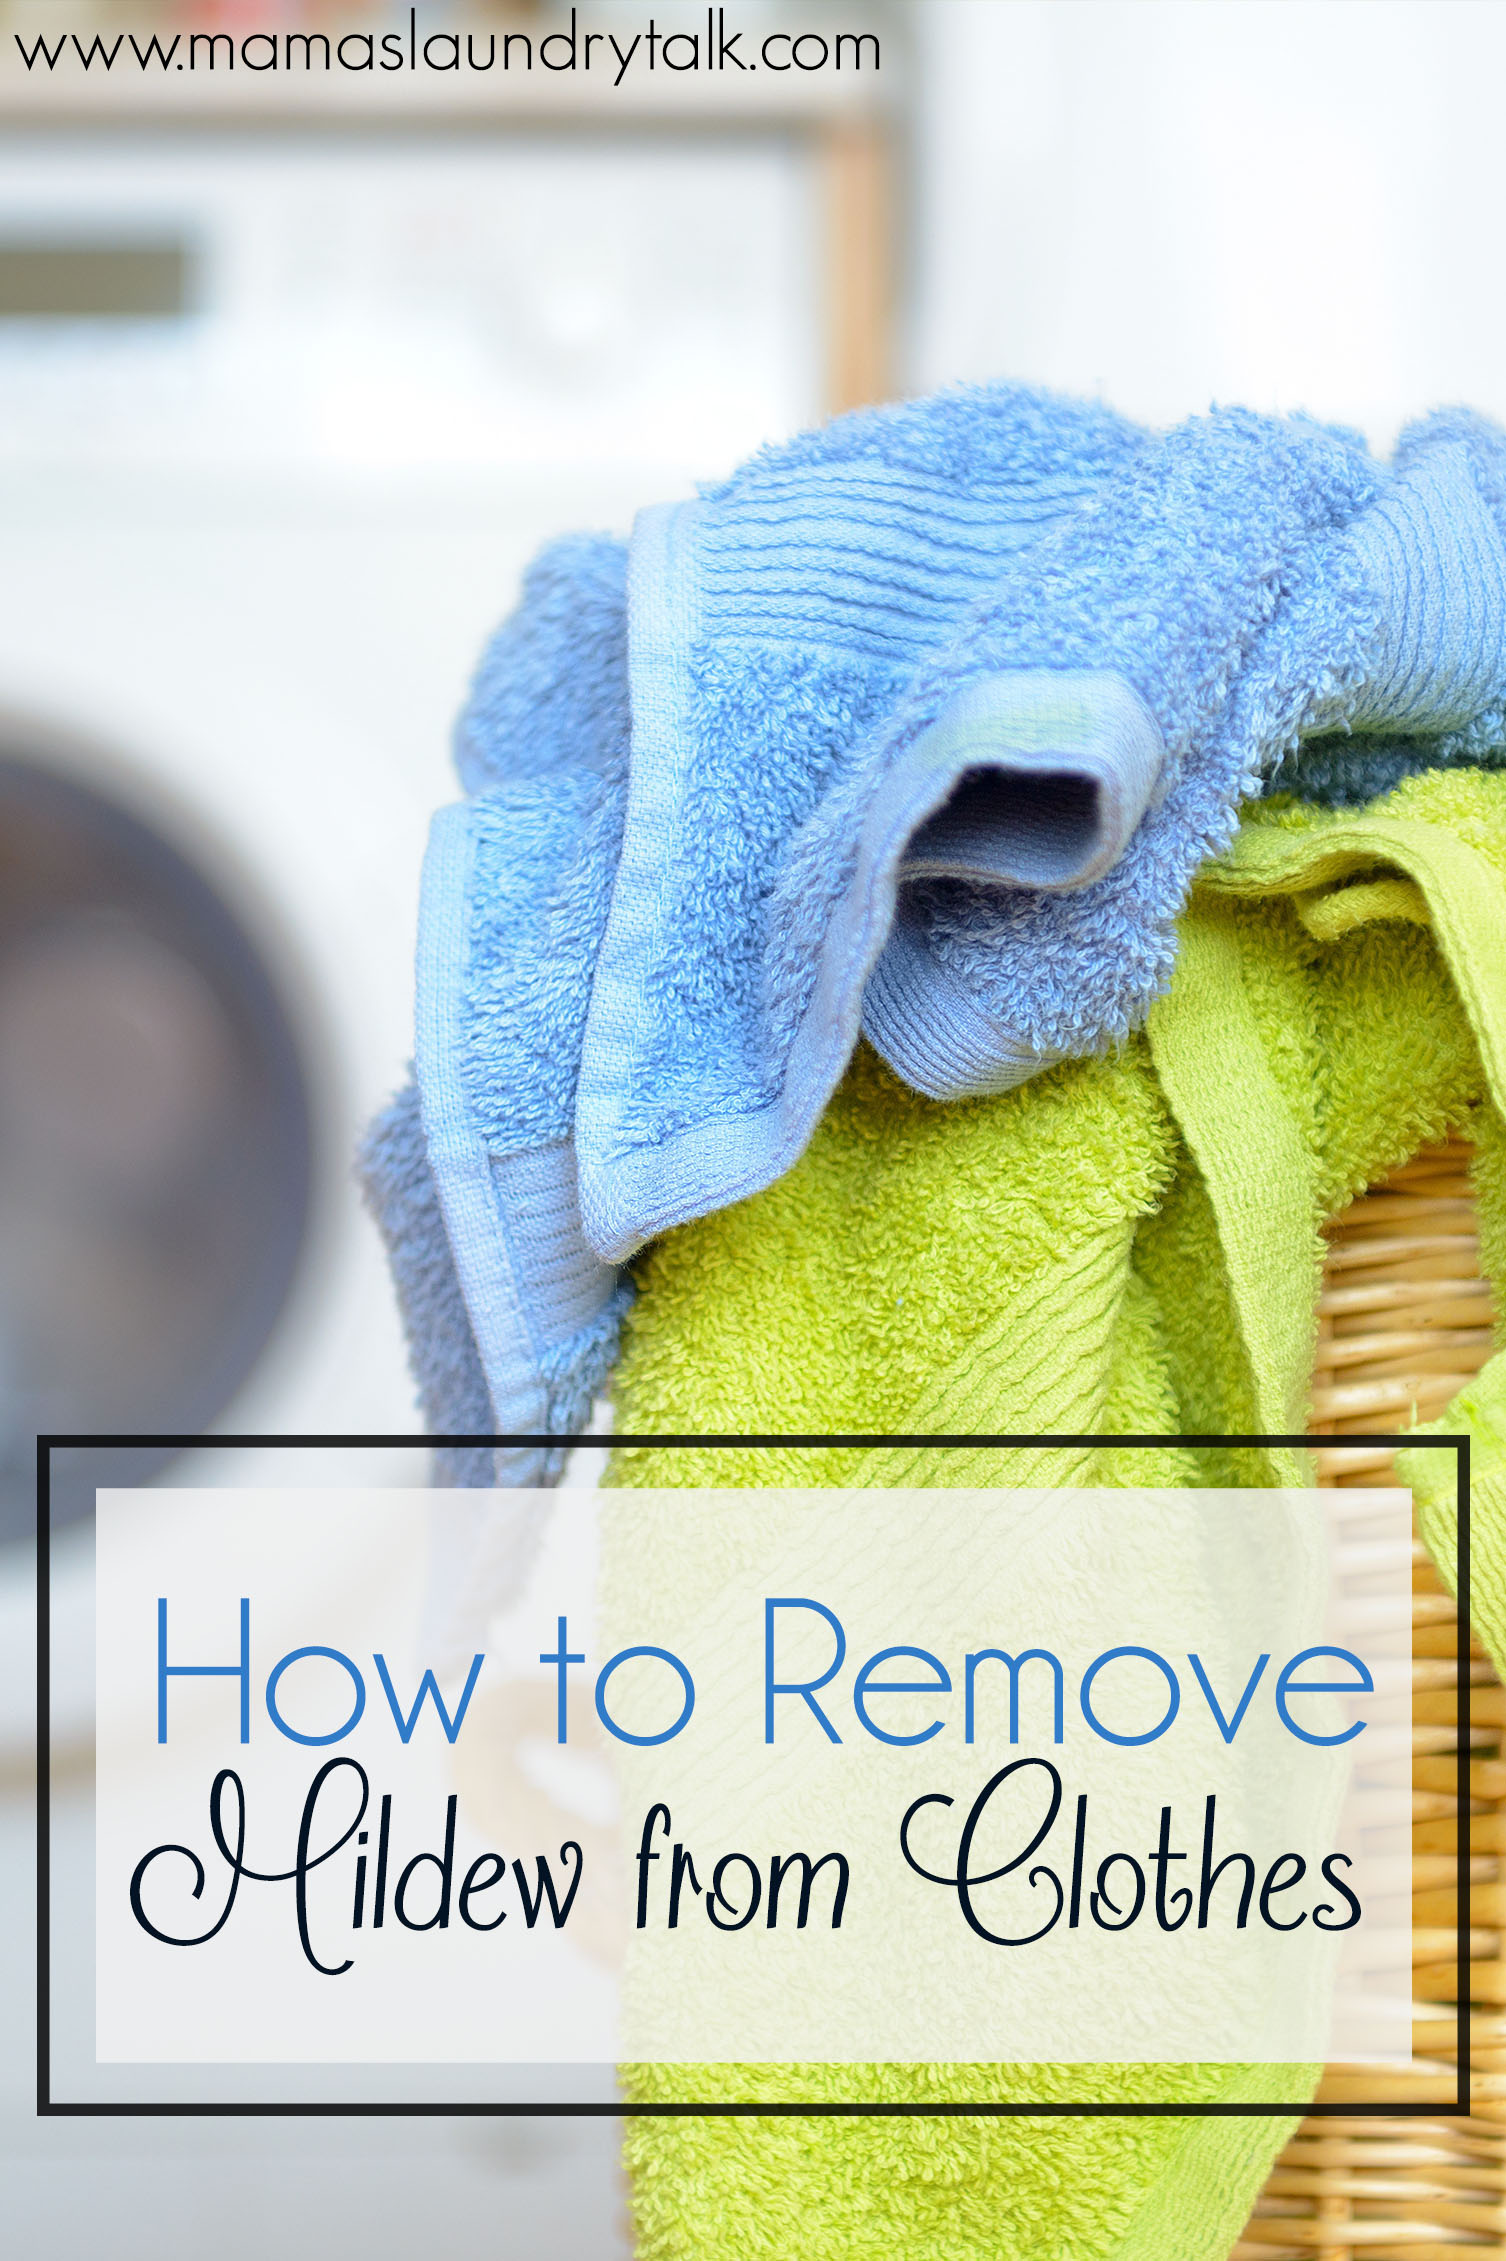 How To Get Rid Of Mildew >> How To Remove Mildew From Clothes Mama S Laundry Talk